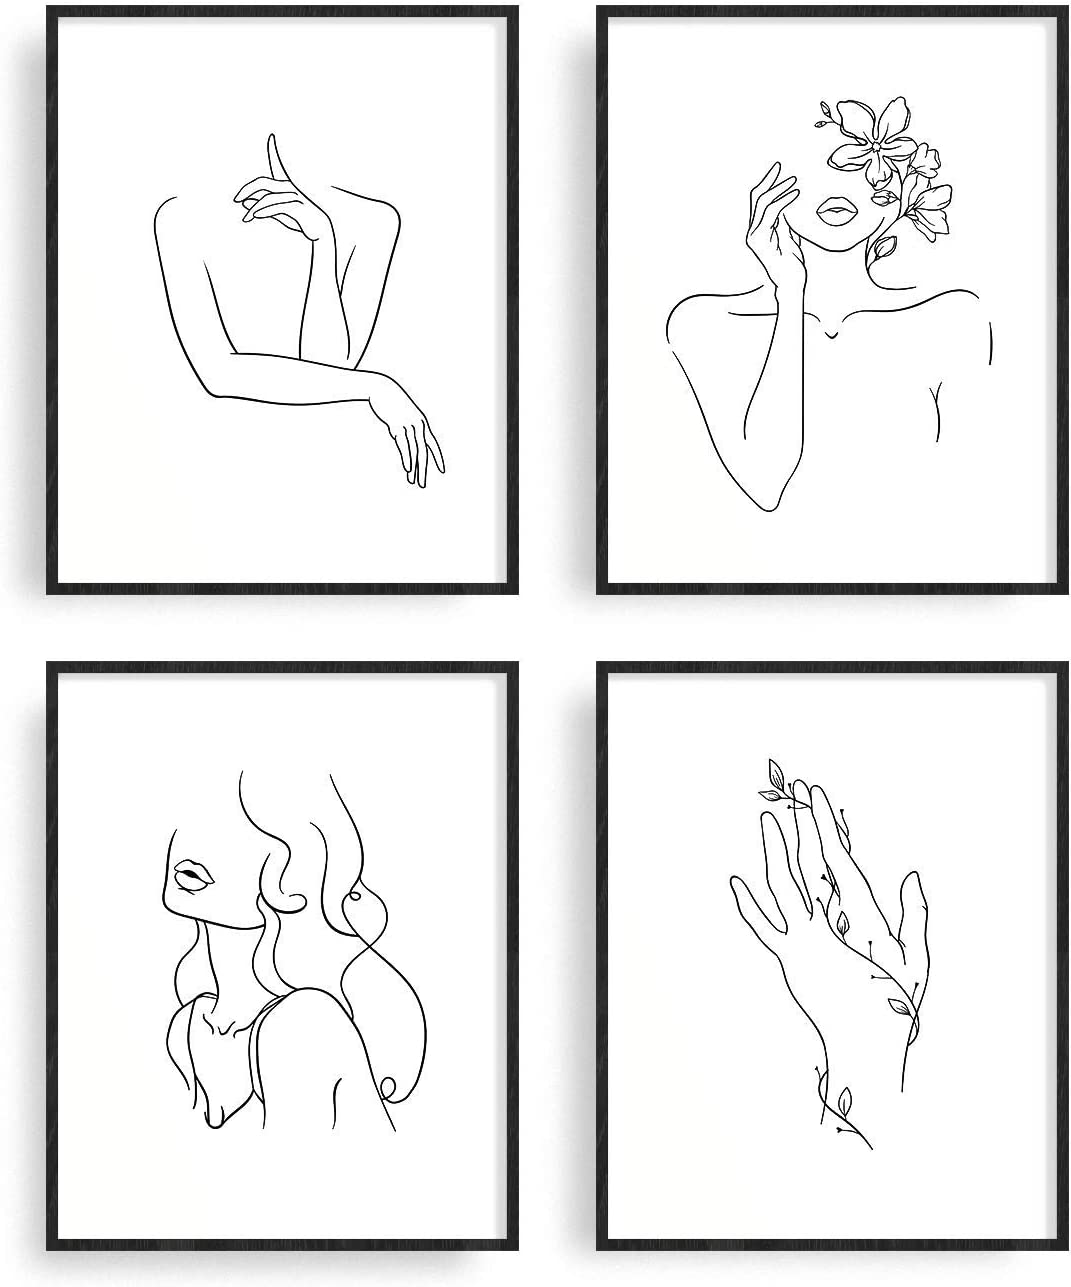 "Minimalist Line Art Prints Set of 4 By Carefree Bee | Aesthetic Art Posters | Wall Art Minimalist Painting | Minimal Wall Art | Drawing Poster | Black/White Prints | Unframed | 8"" x 10"" 